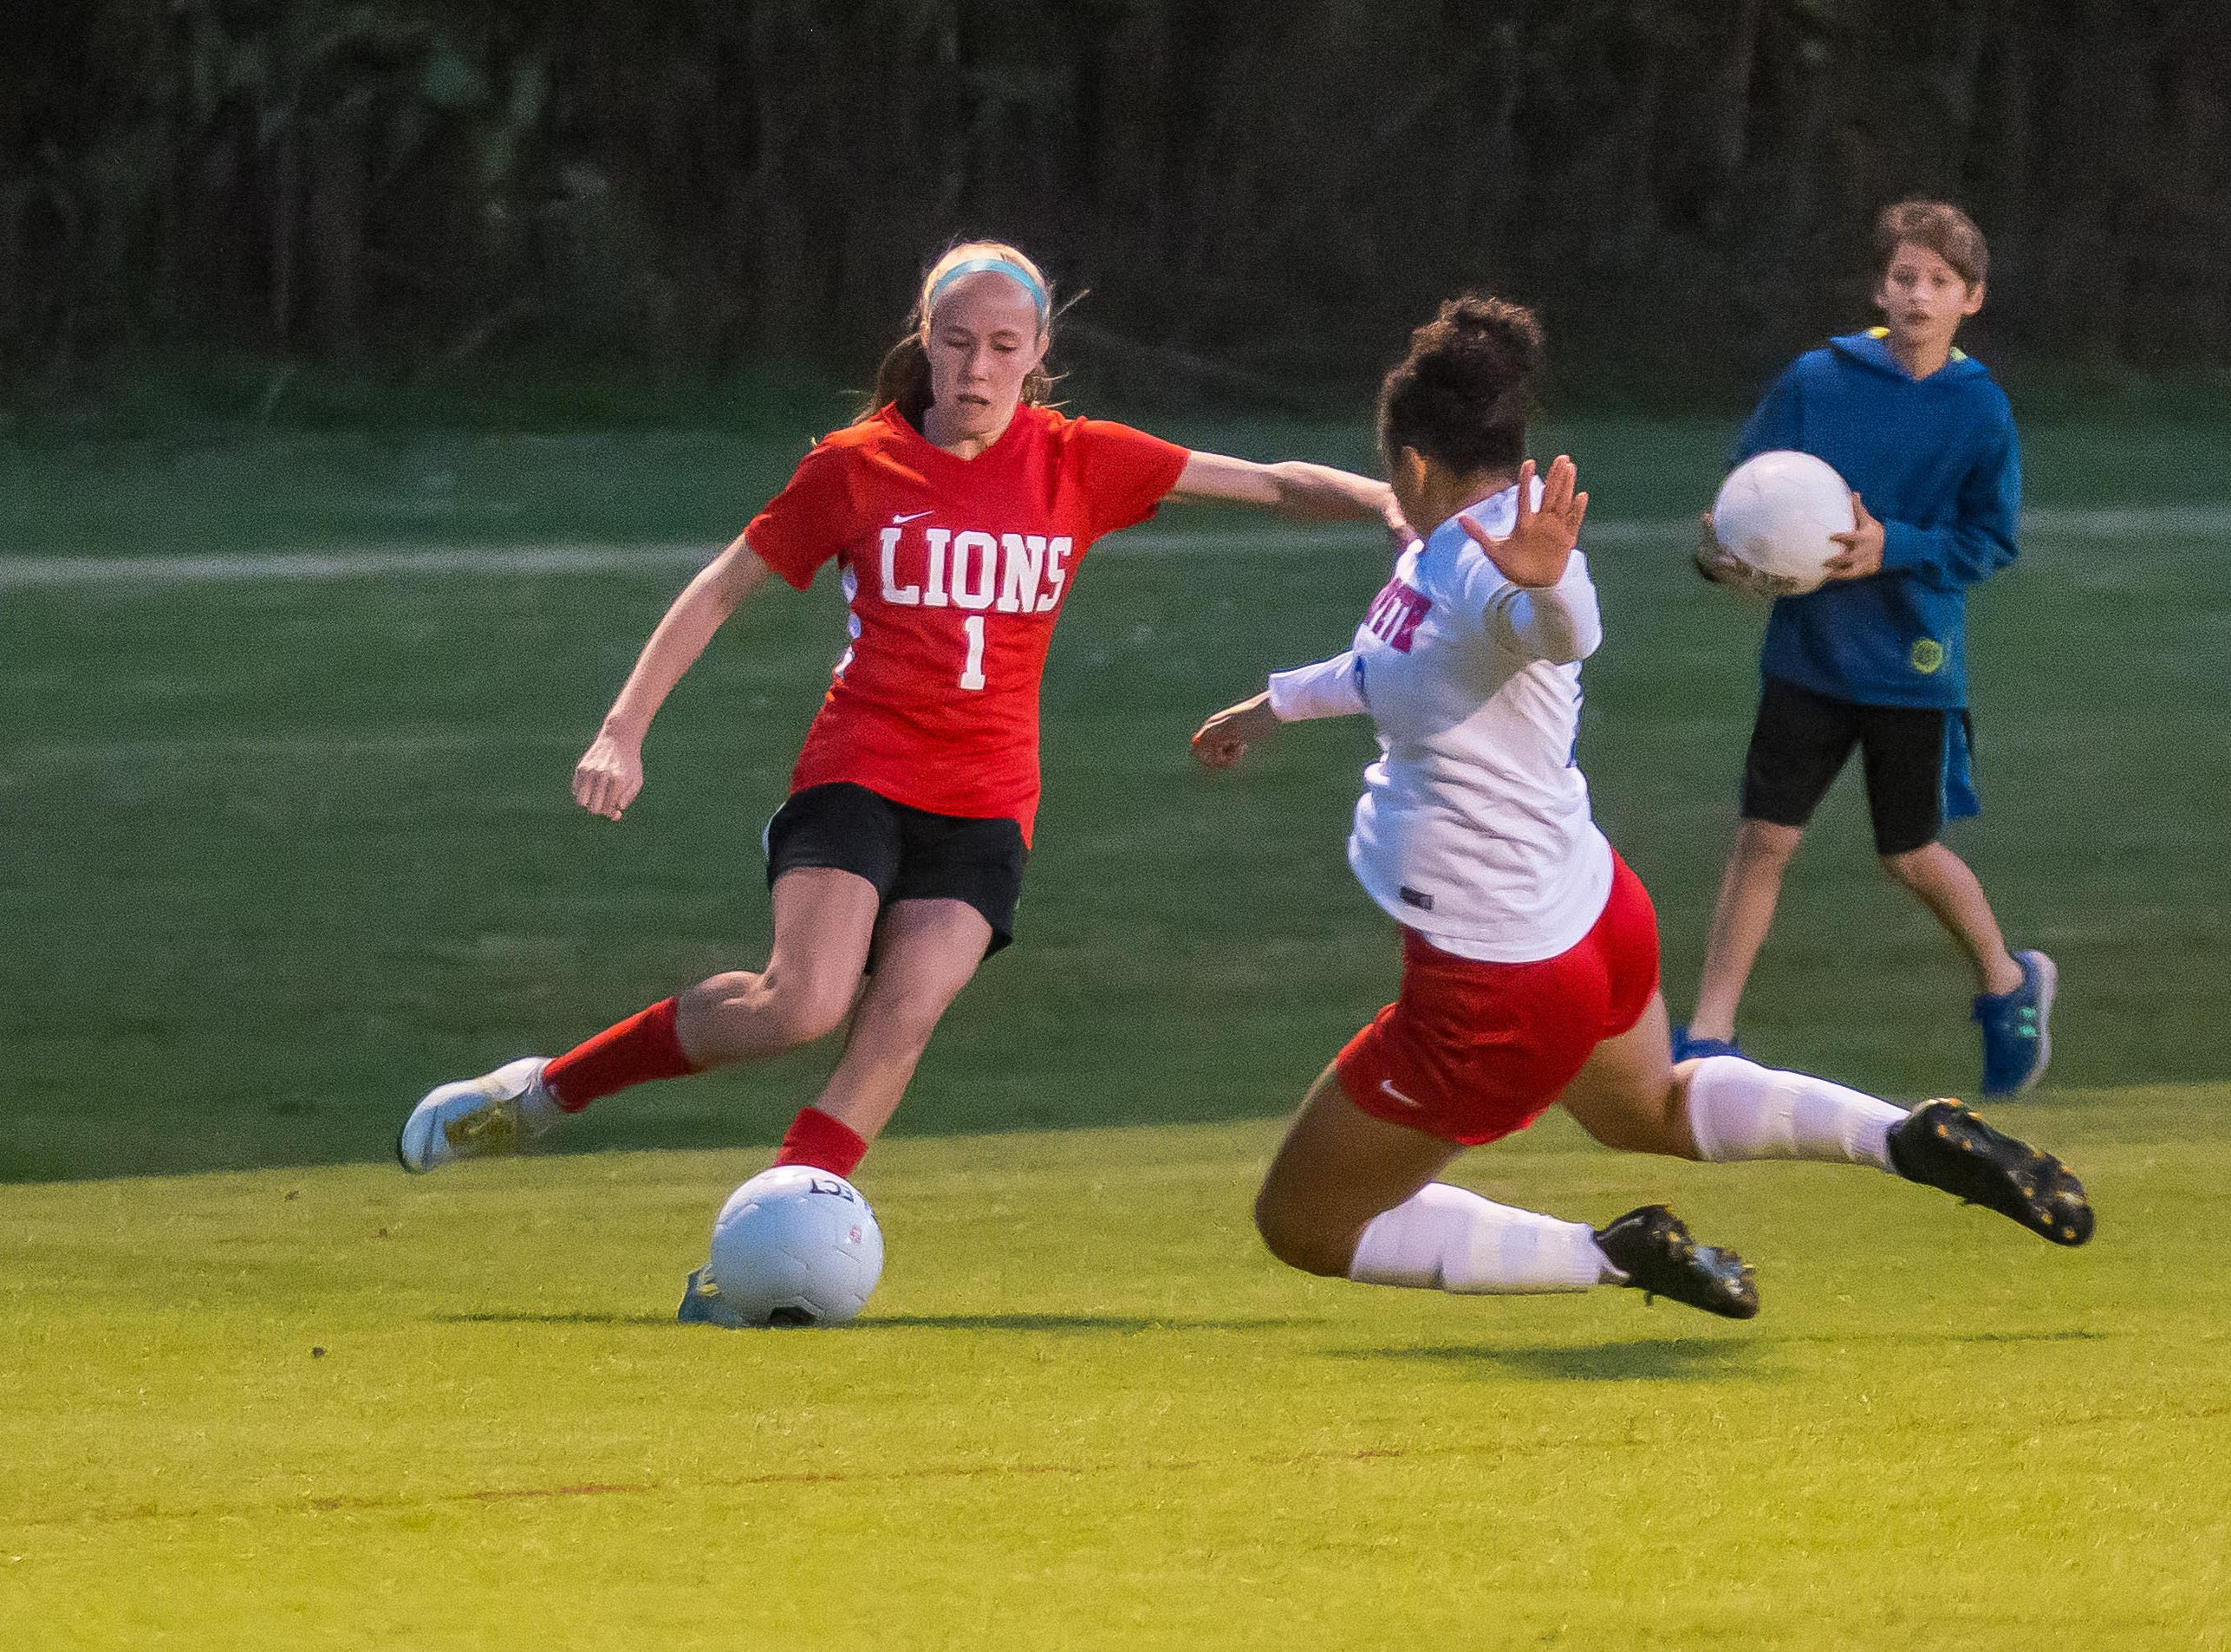 Grace Christian freshman Anna Cate Beachum and Harpeth senior Alessia Powers battle for the ball.